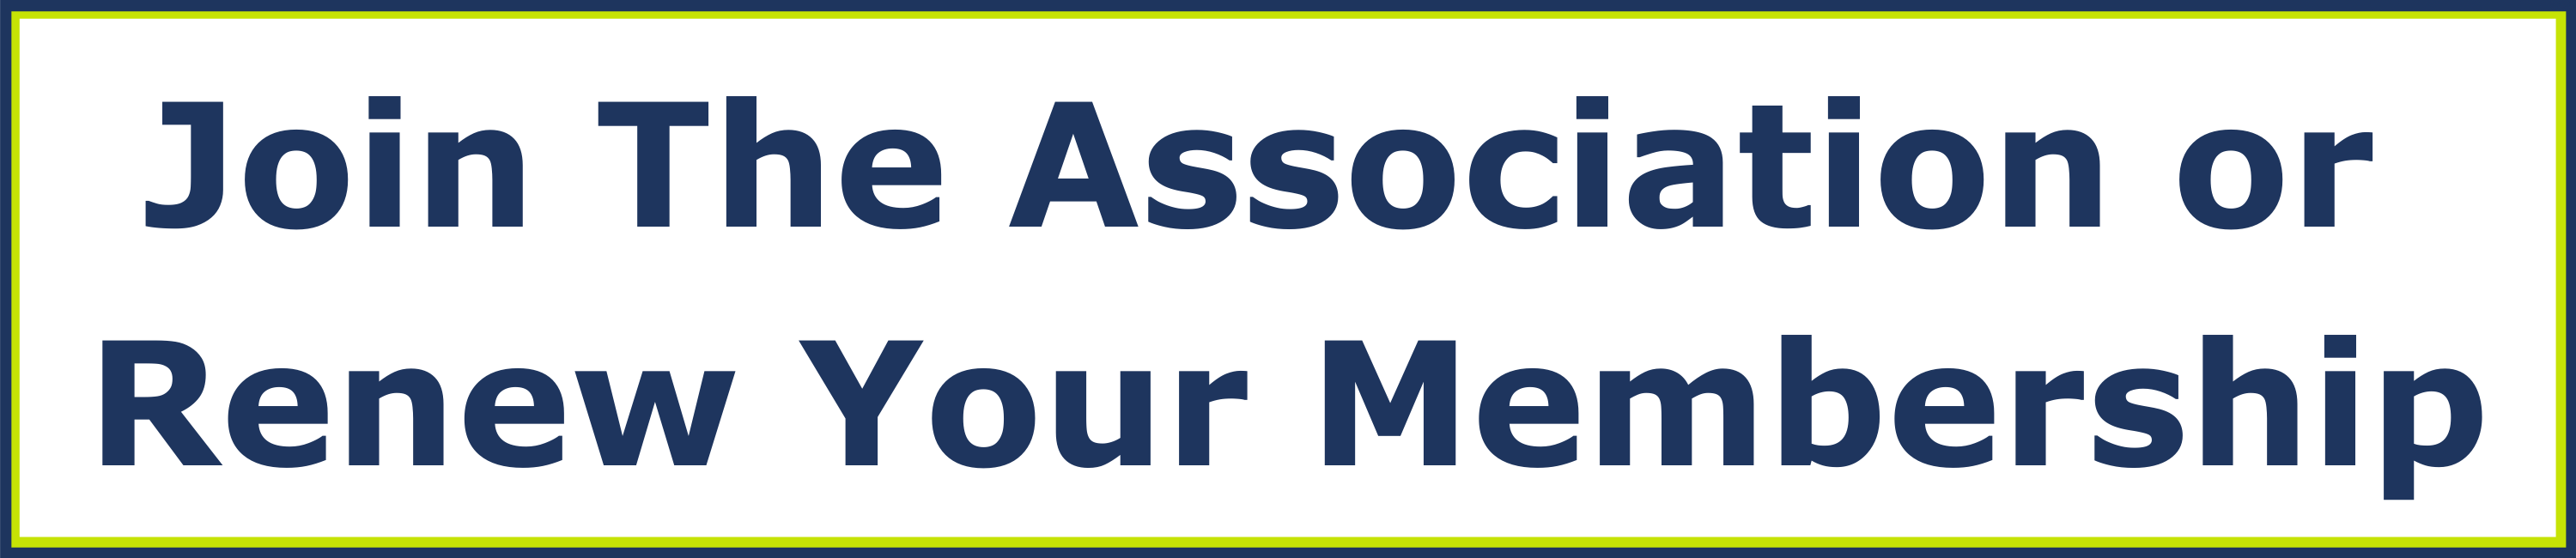 Join the association or renew your membership.